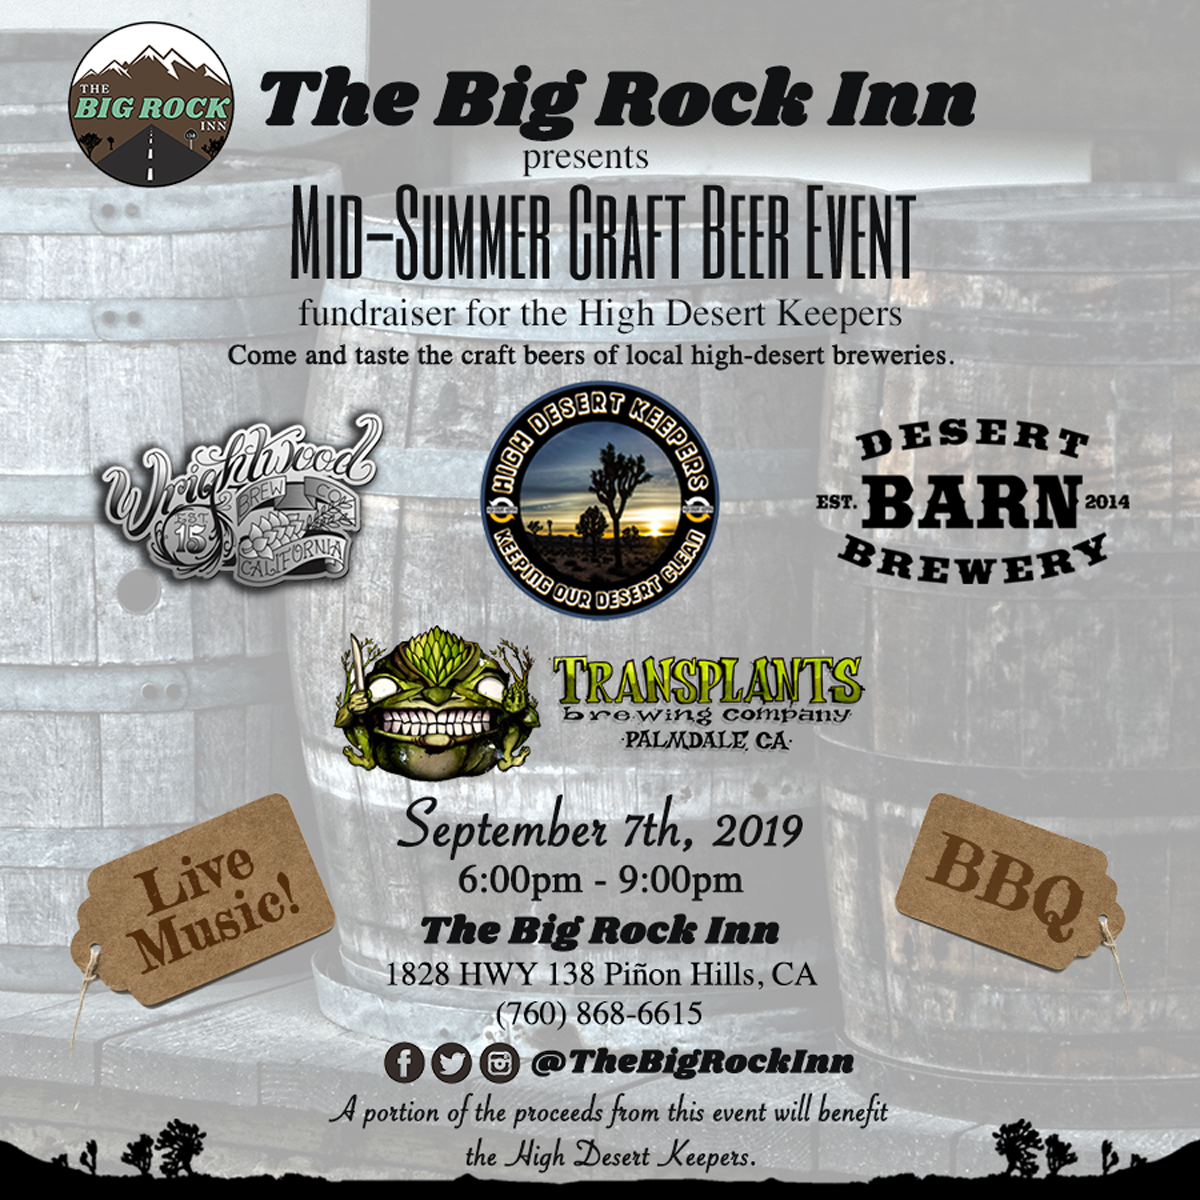 The Big Rock Inn Mid-Summer Craft Beer Event